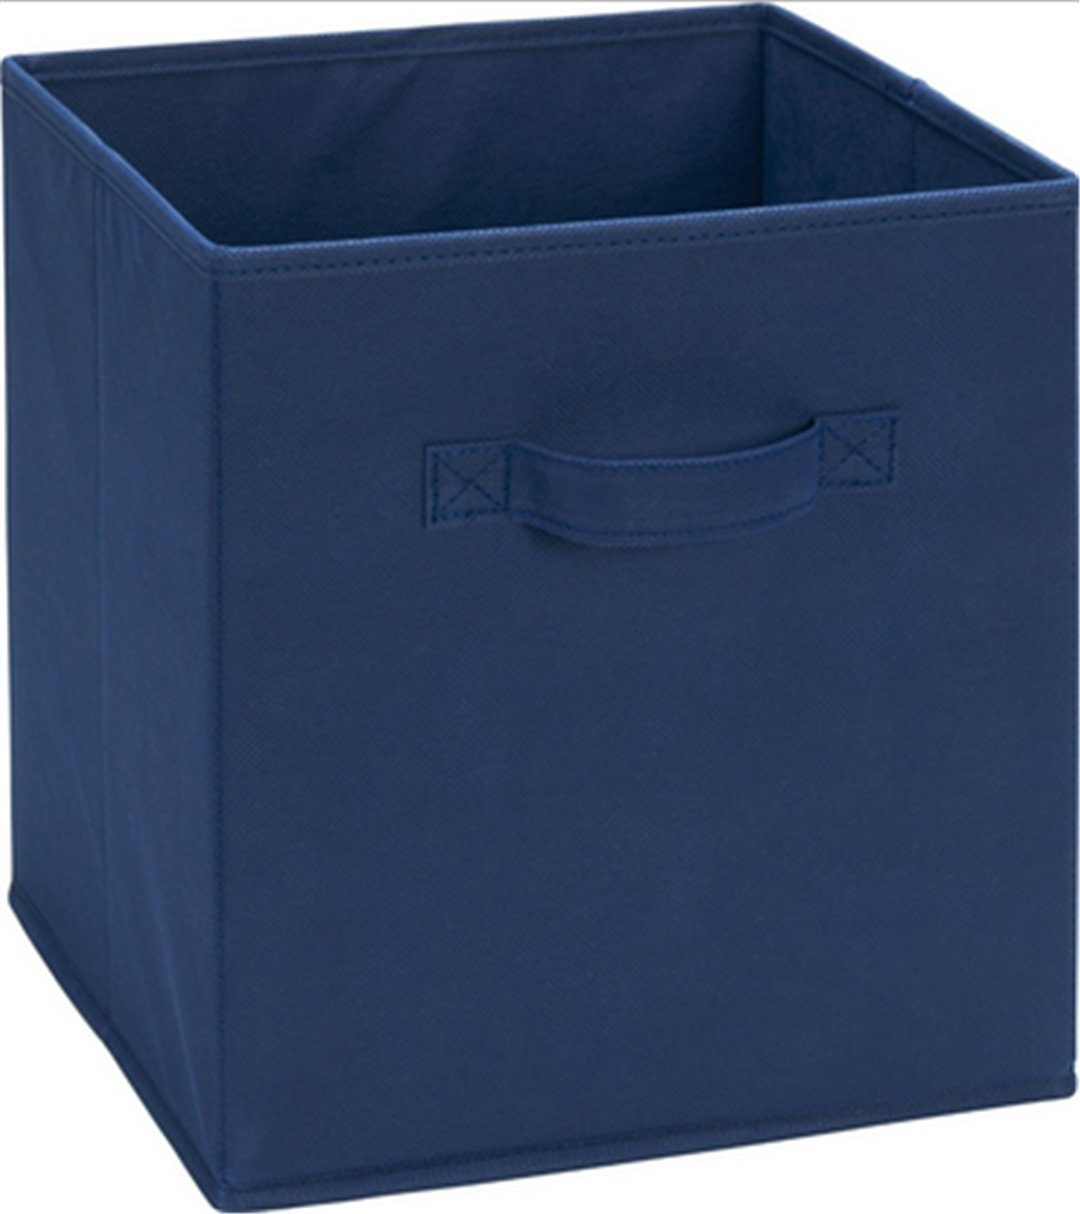 Mytop Foldable Cloth Storage Cube Basket Bins Organizer Containers Drawers